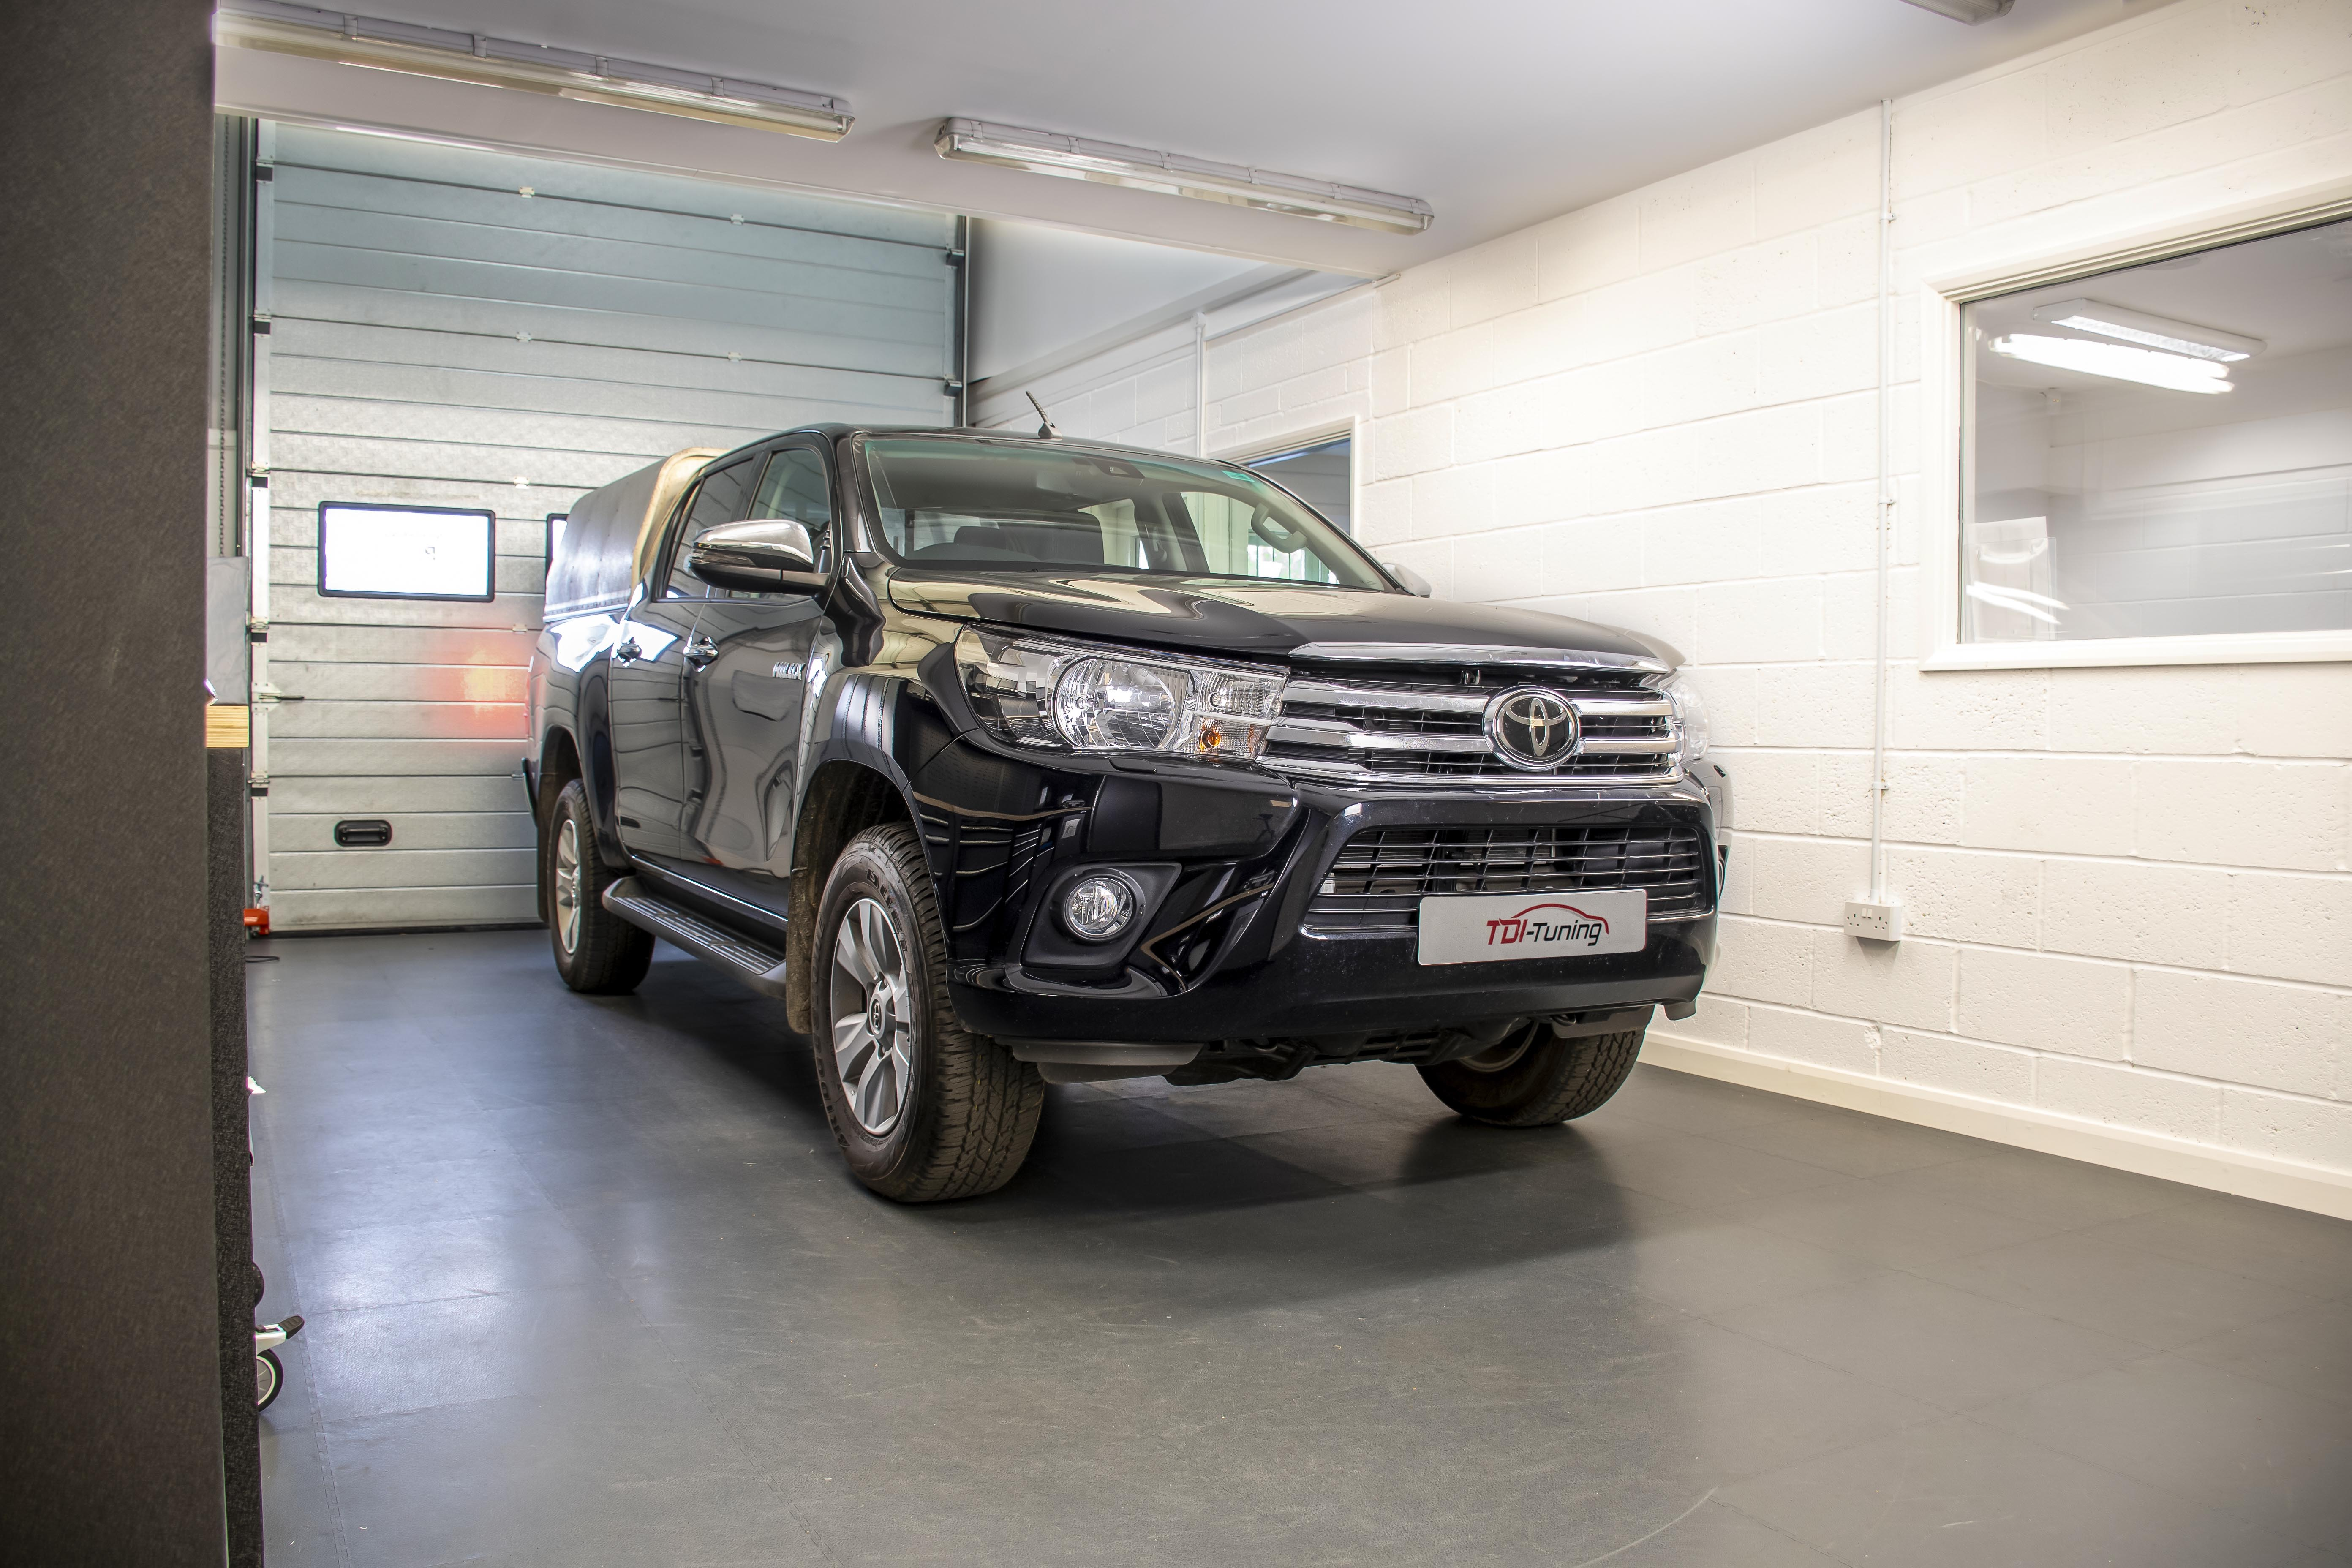 Toyota hilux chip tuning